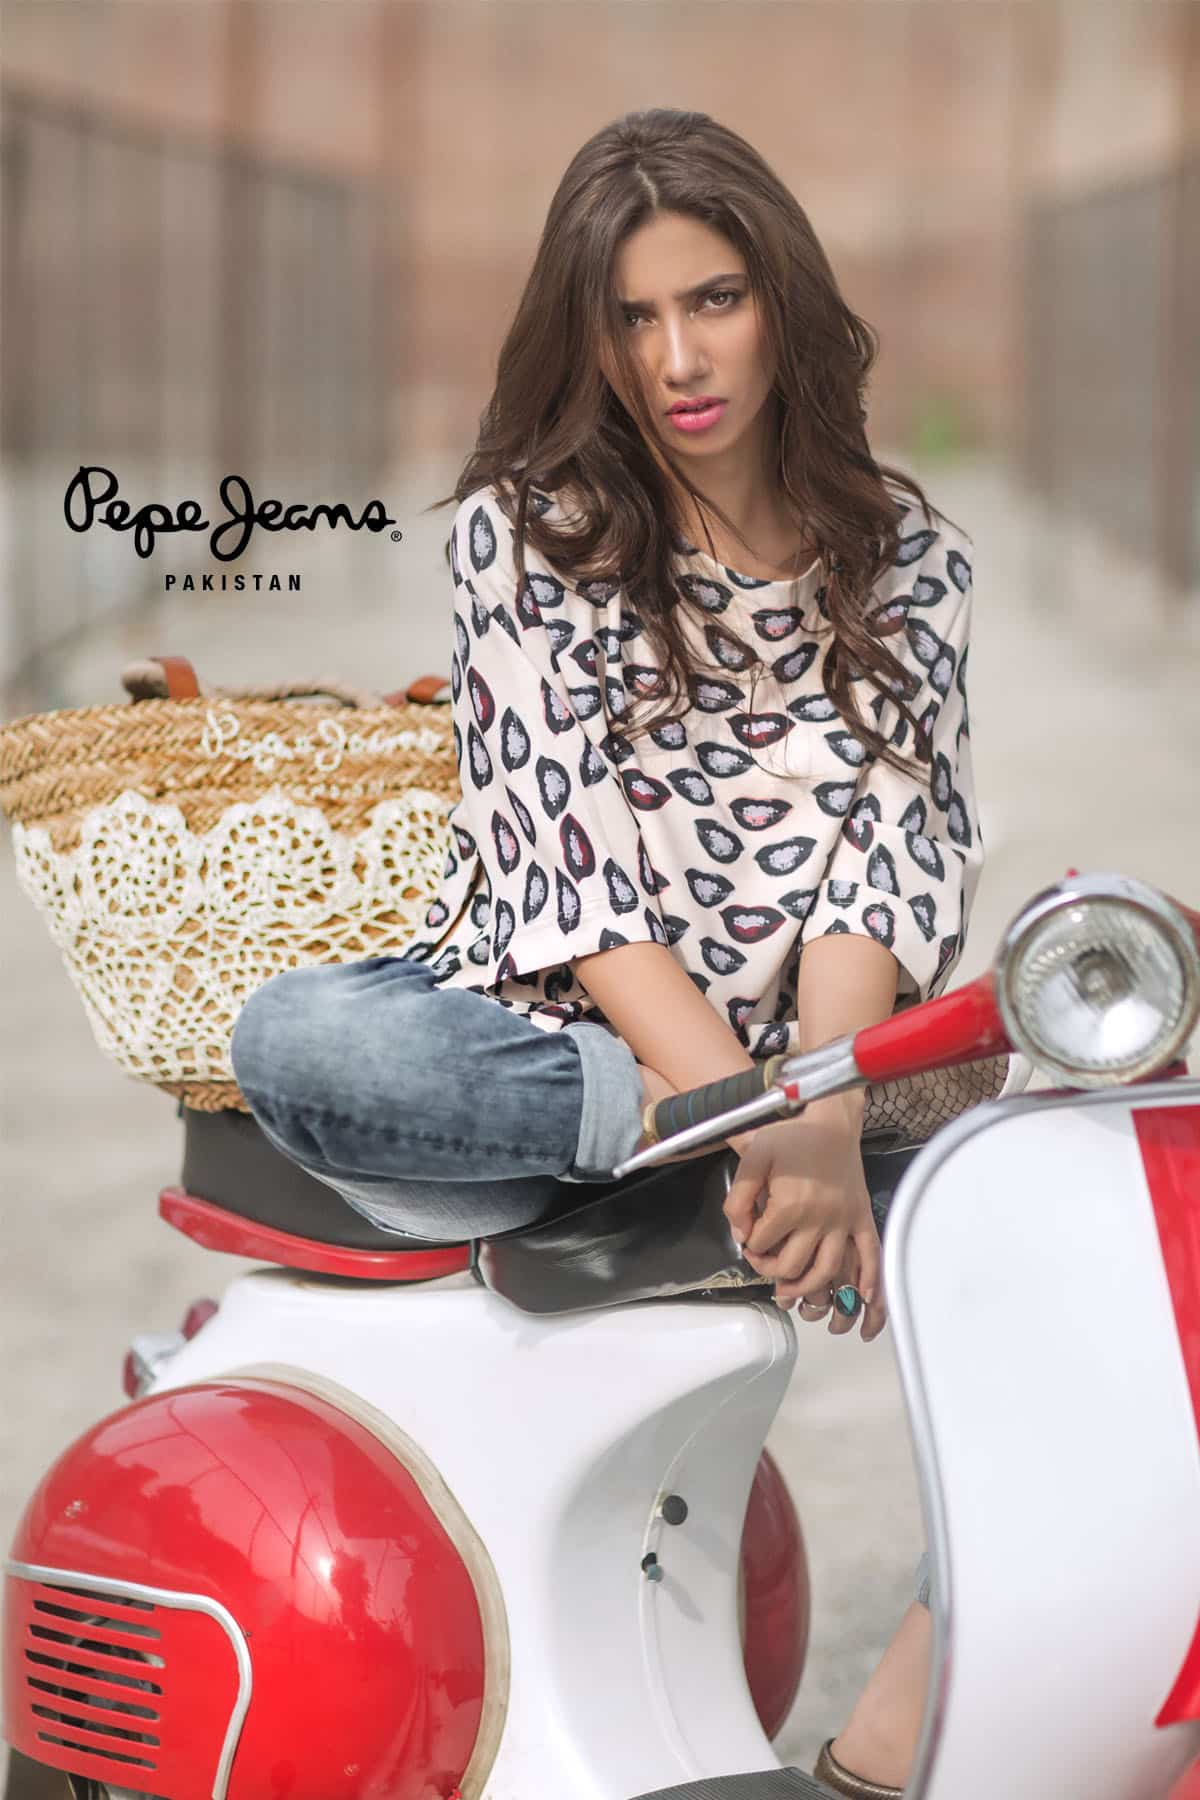 Mahira Khan for Pepe Jeans Pakistan Winter 2015 Campaign – #MKLovesPepe (3)